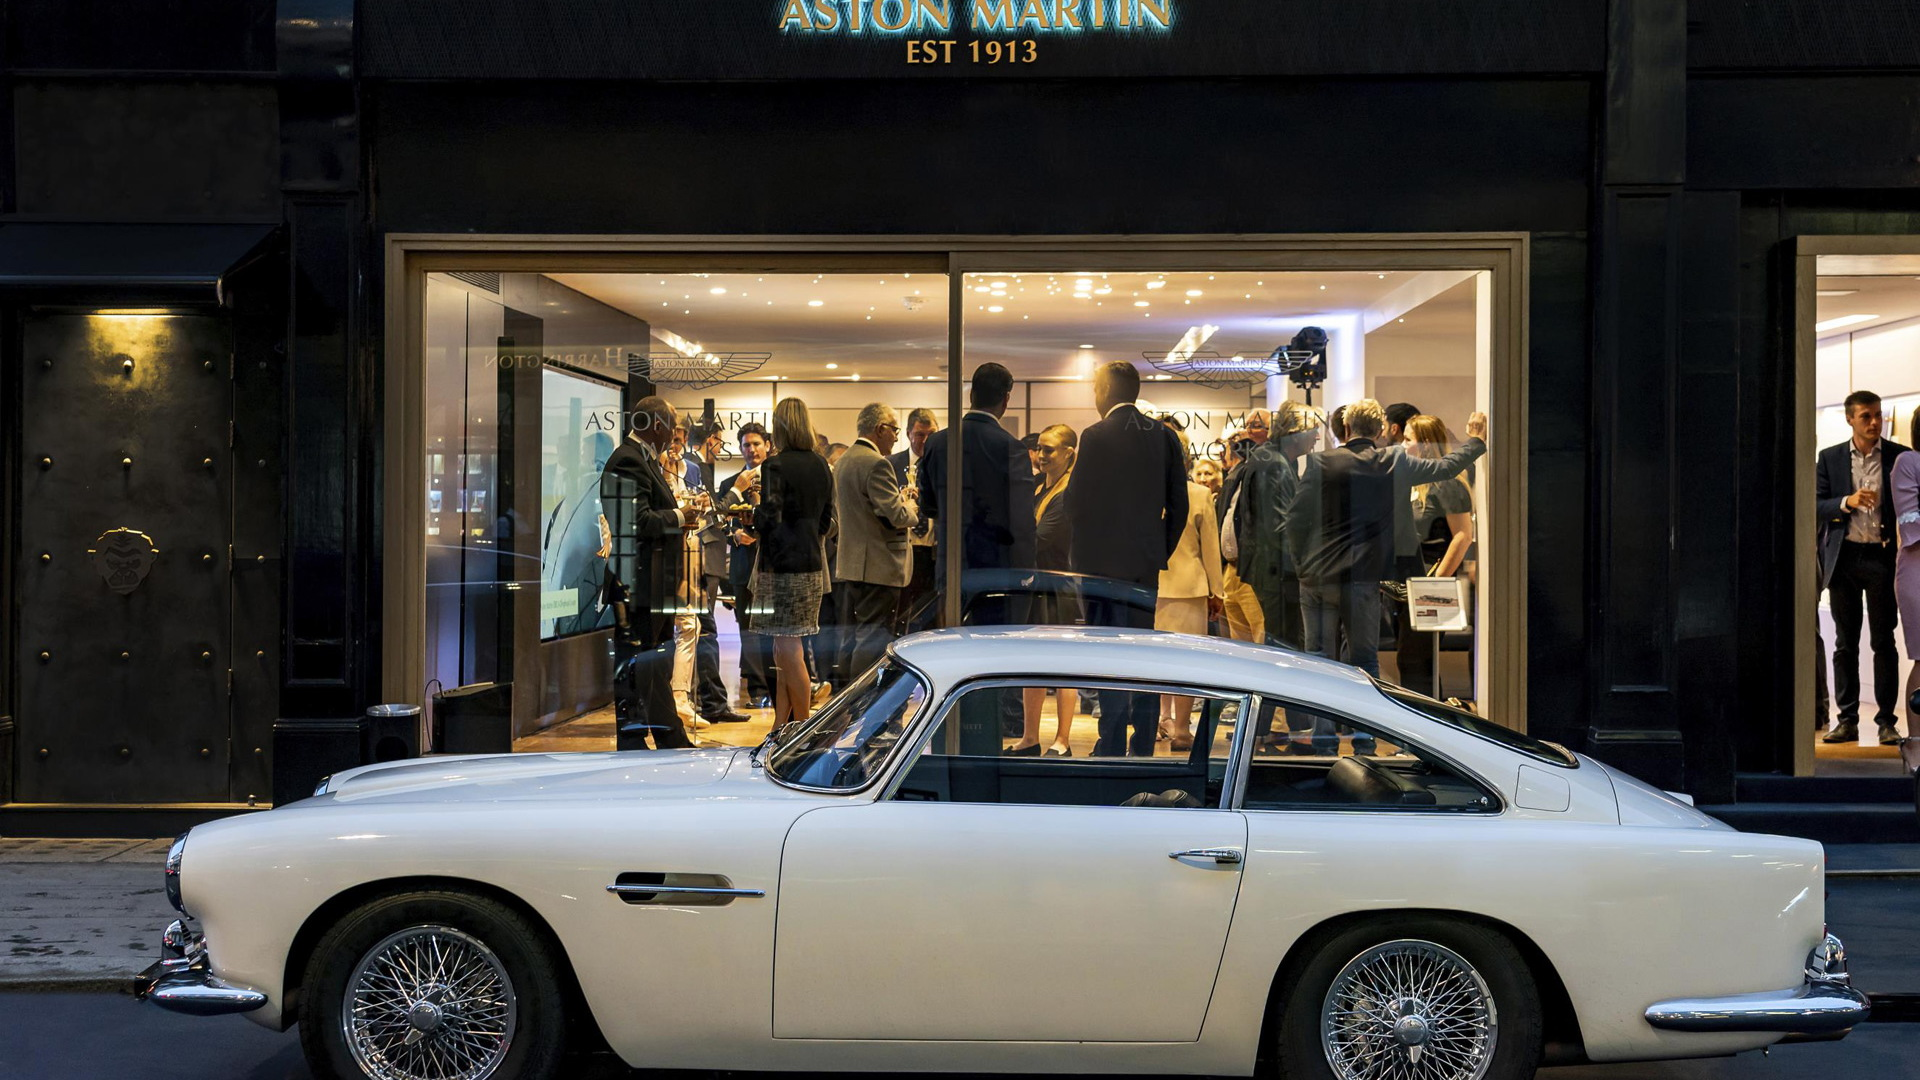 Aston Martin Works classic car showroom in central London